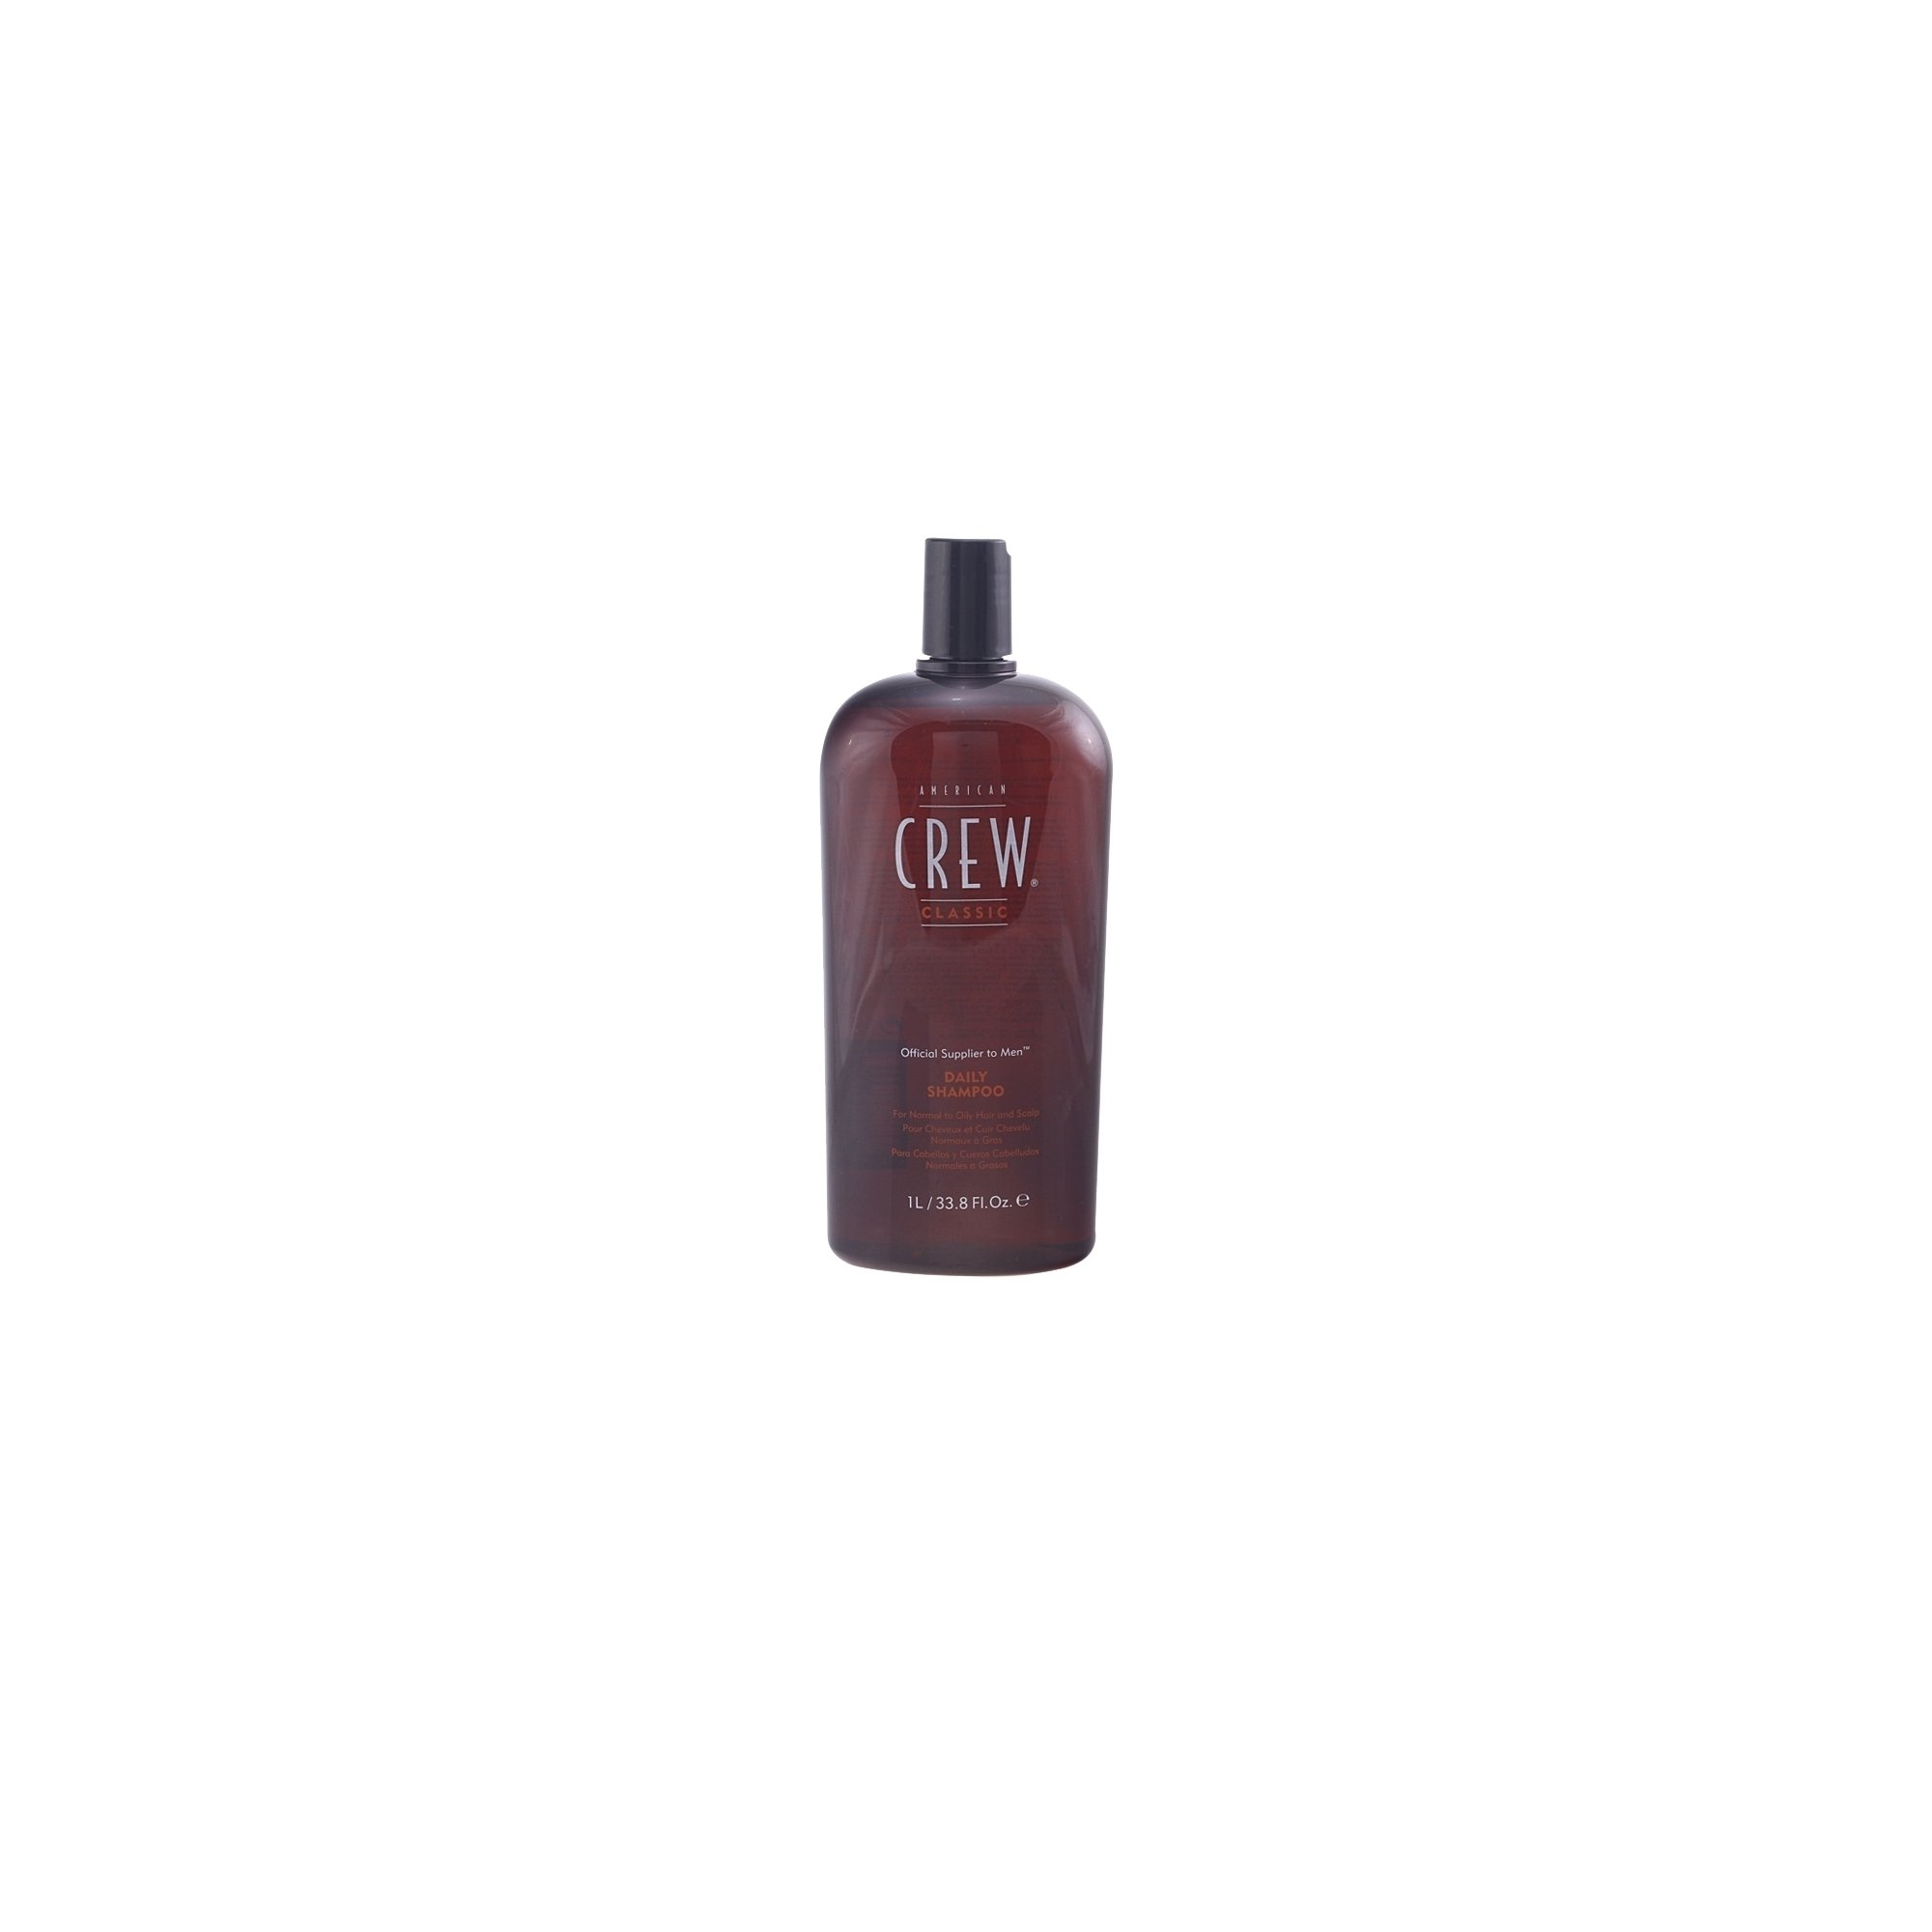 American Crew Daily Shampoo, For Normal to Oily Hair and Scalp, 33.8-Ounce Bottles (Pack of 2) - Packaging May Vary by AMERICAN CREW